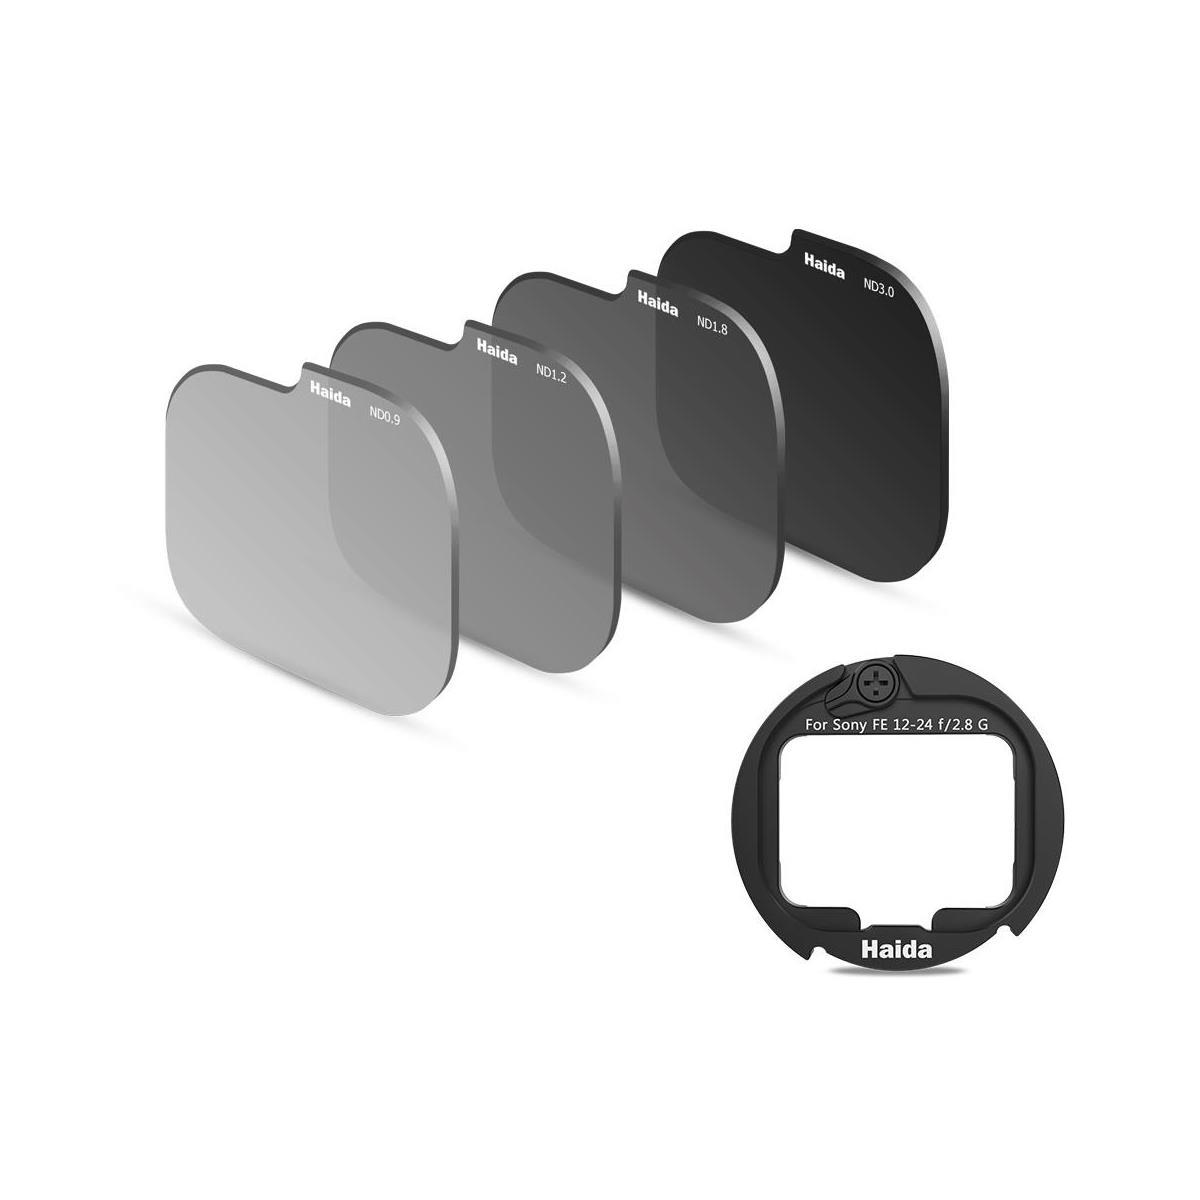 Haida Rear Lens ND Filter Kit for Sony FE 12-24mm f/2.8 GM Lens with Adapter Ring